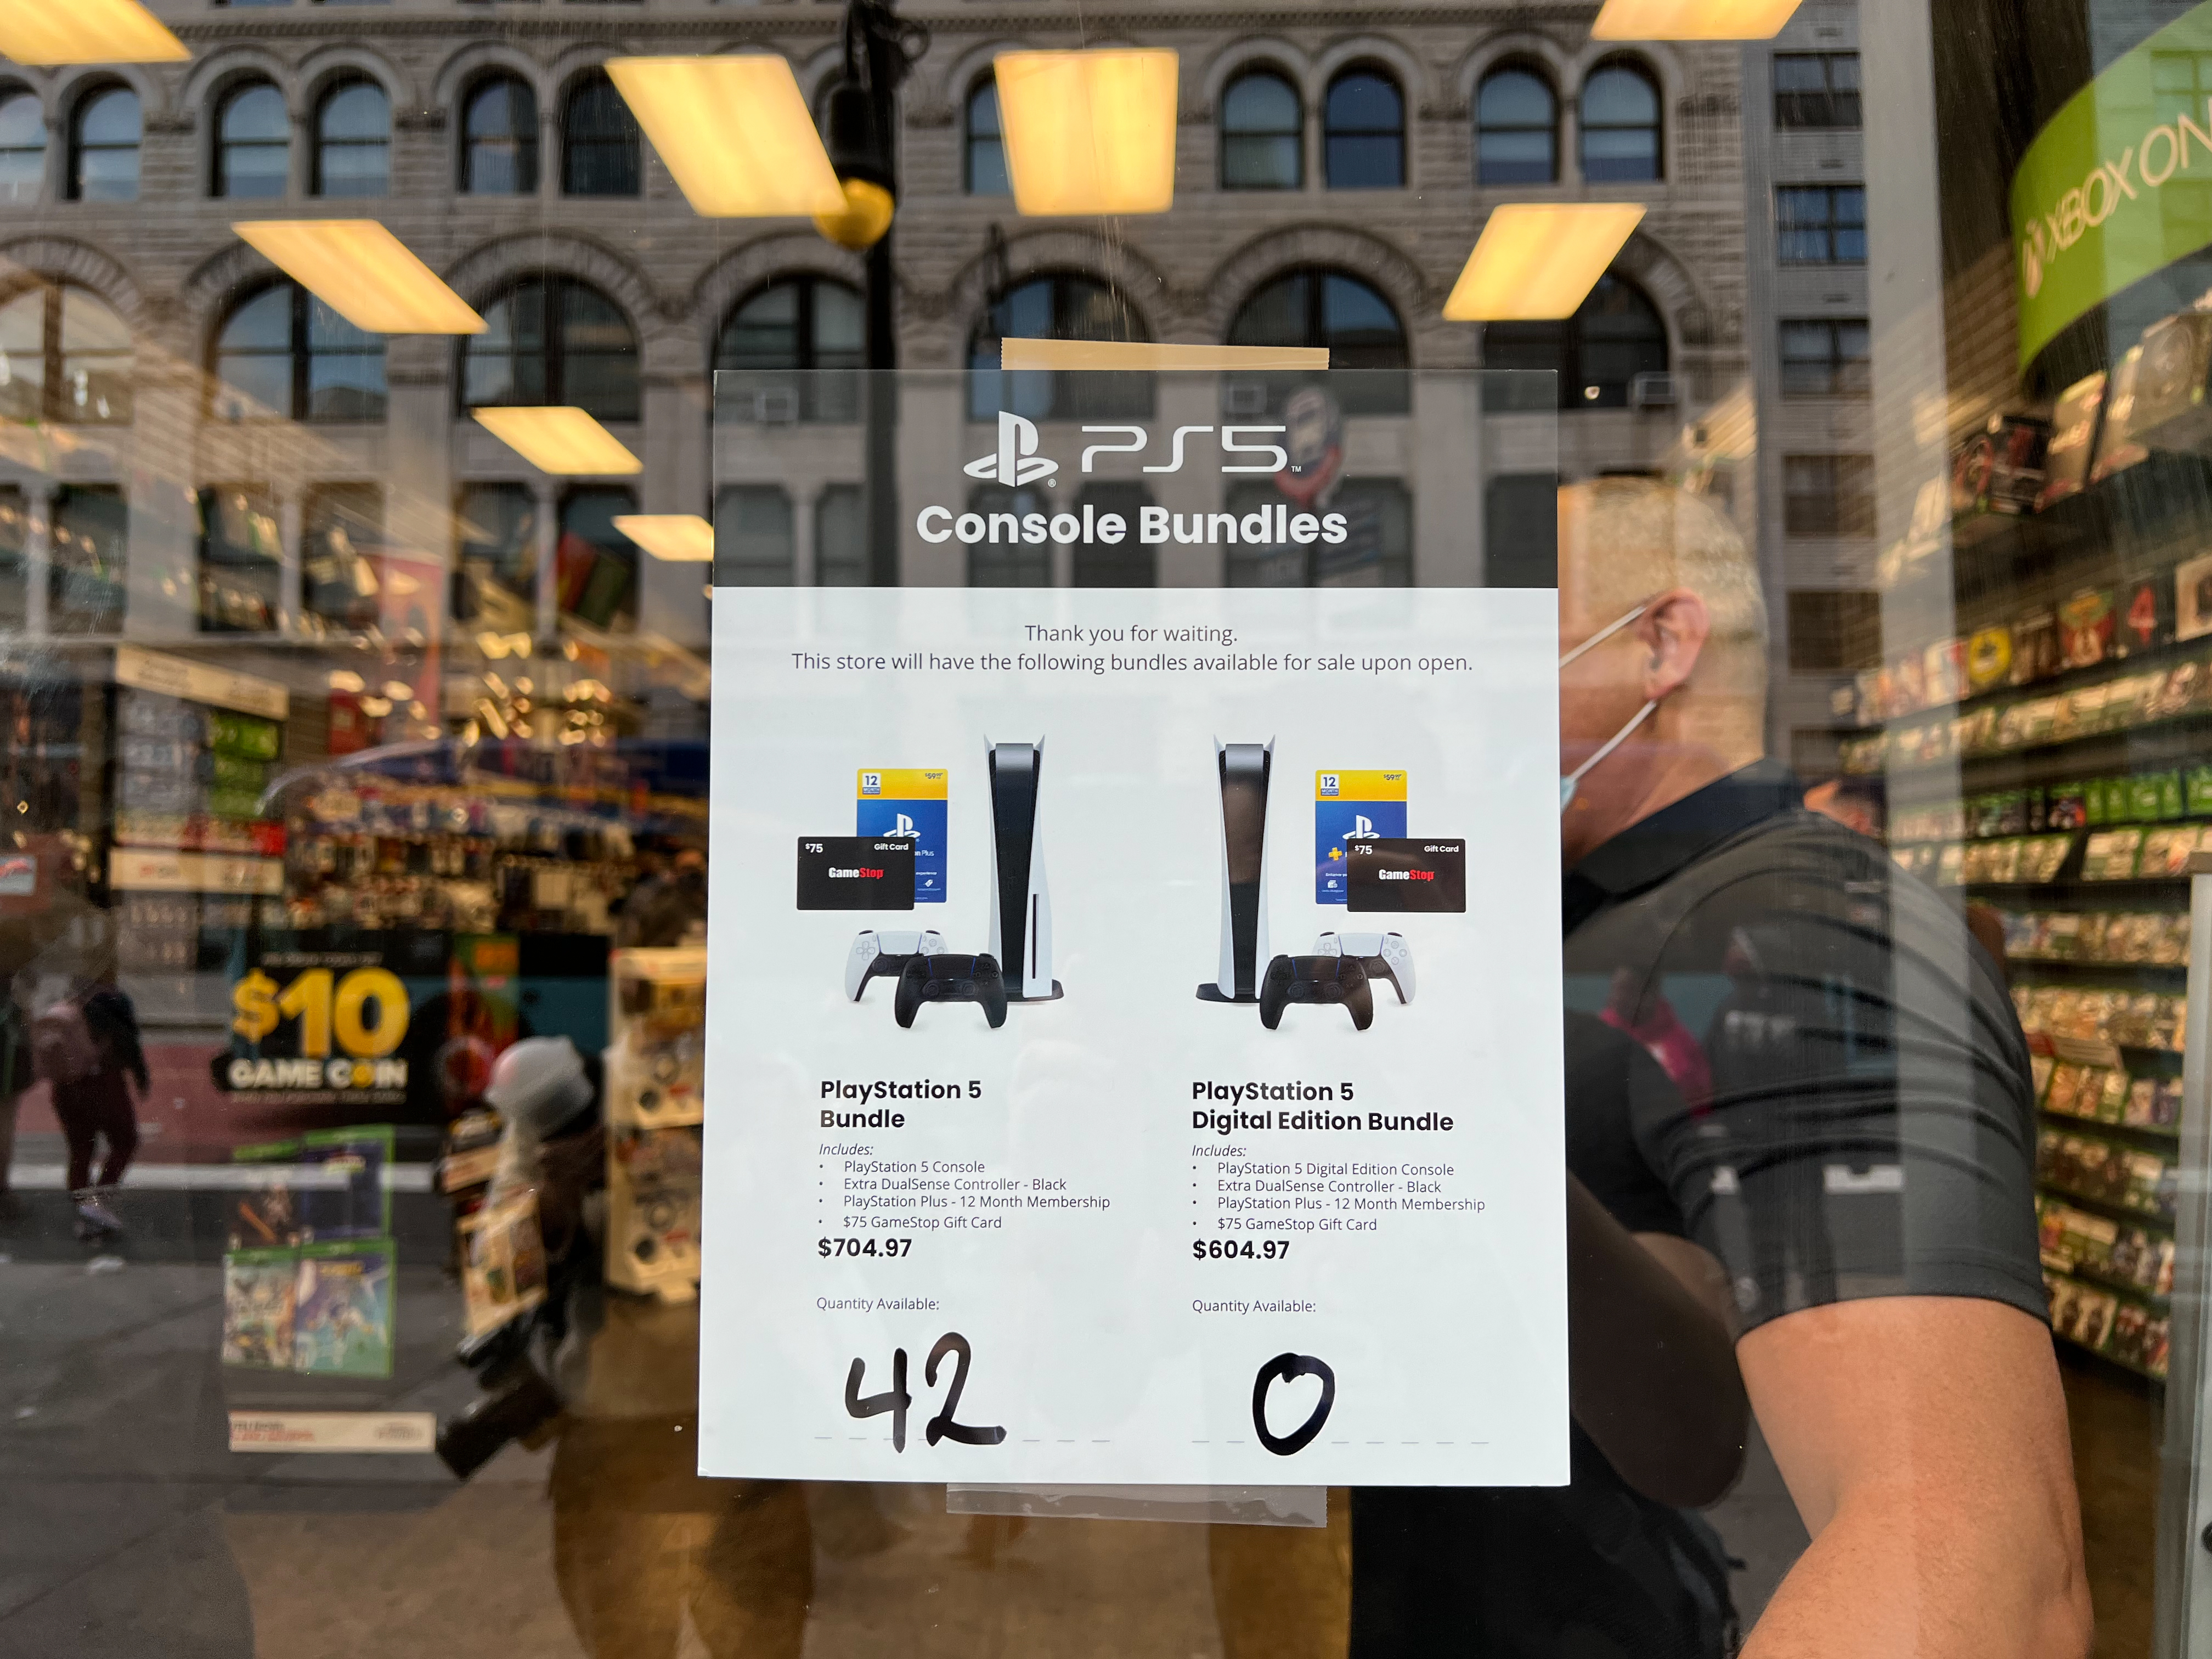 PS5 restock GameStop console count how many at the in-store event